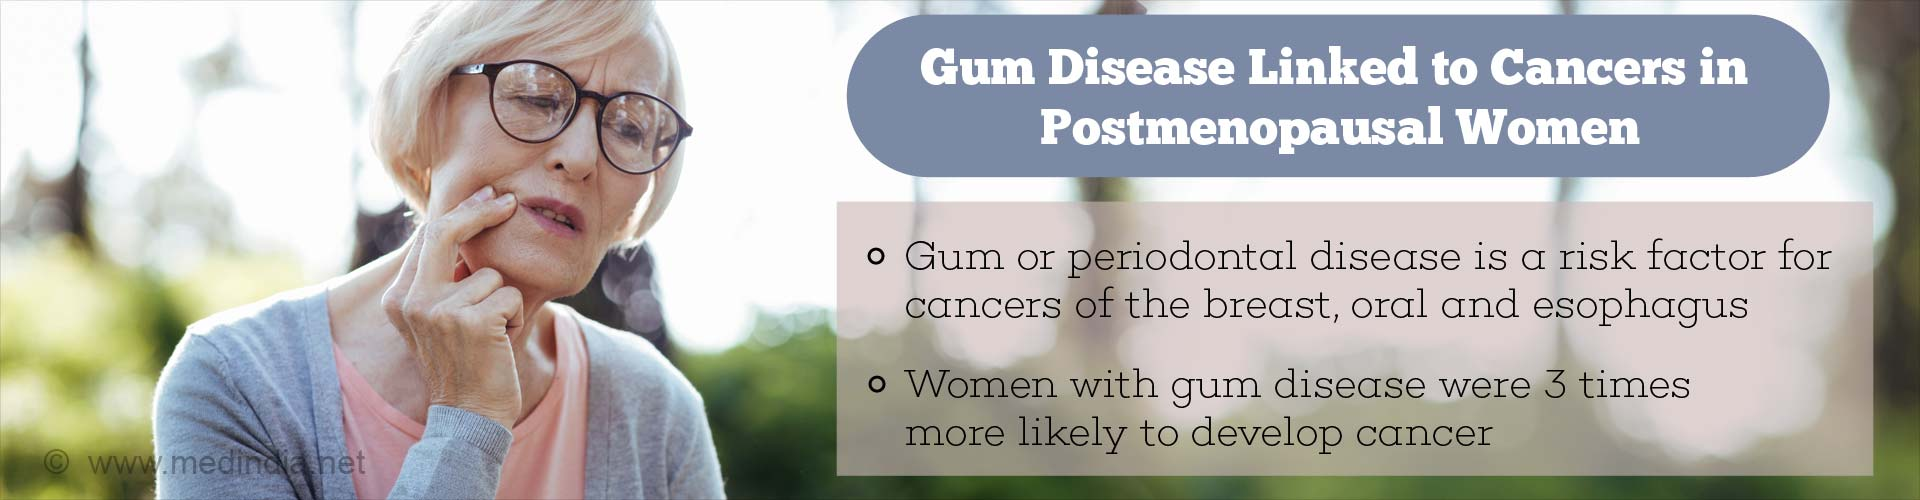 Gum Disease Increases Risk of Cancer in Postmenopausal Women